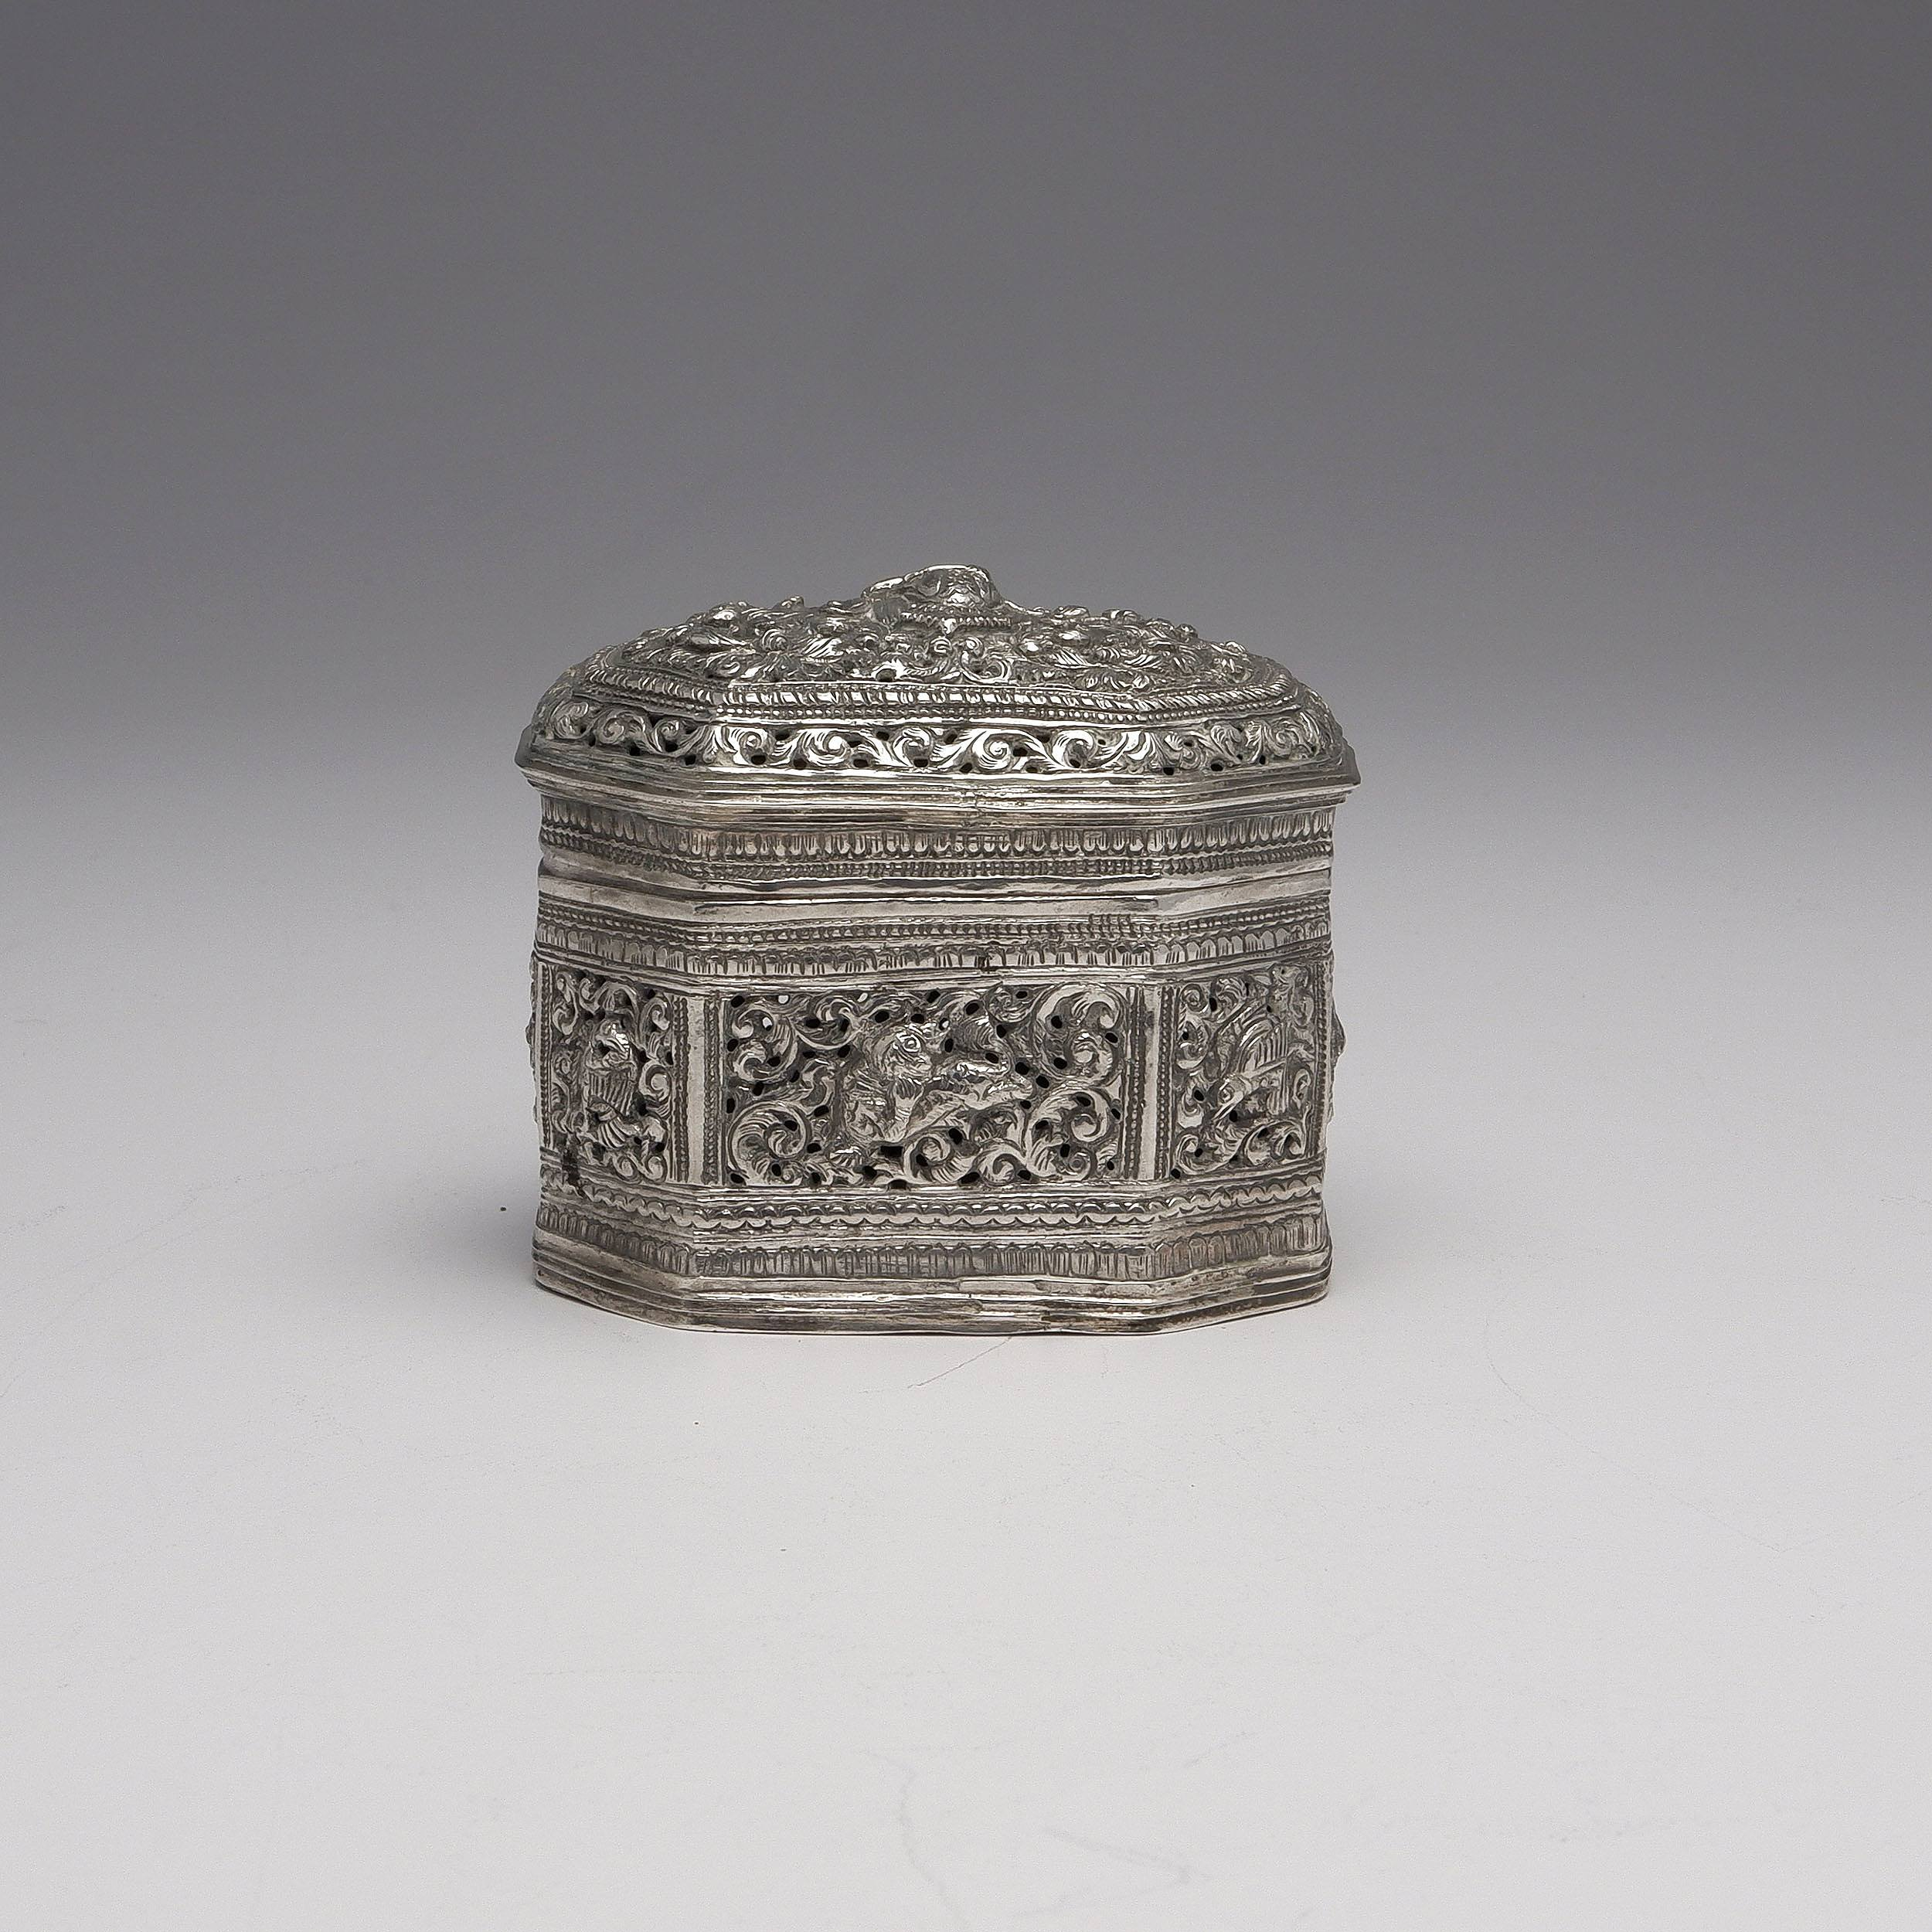 'Burmese Heavily Repousse and Pierced Silver Box, 127g'